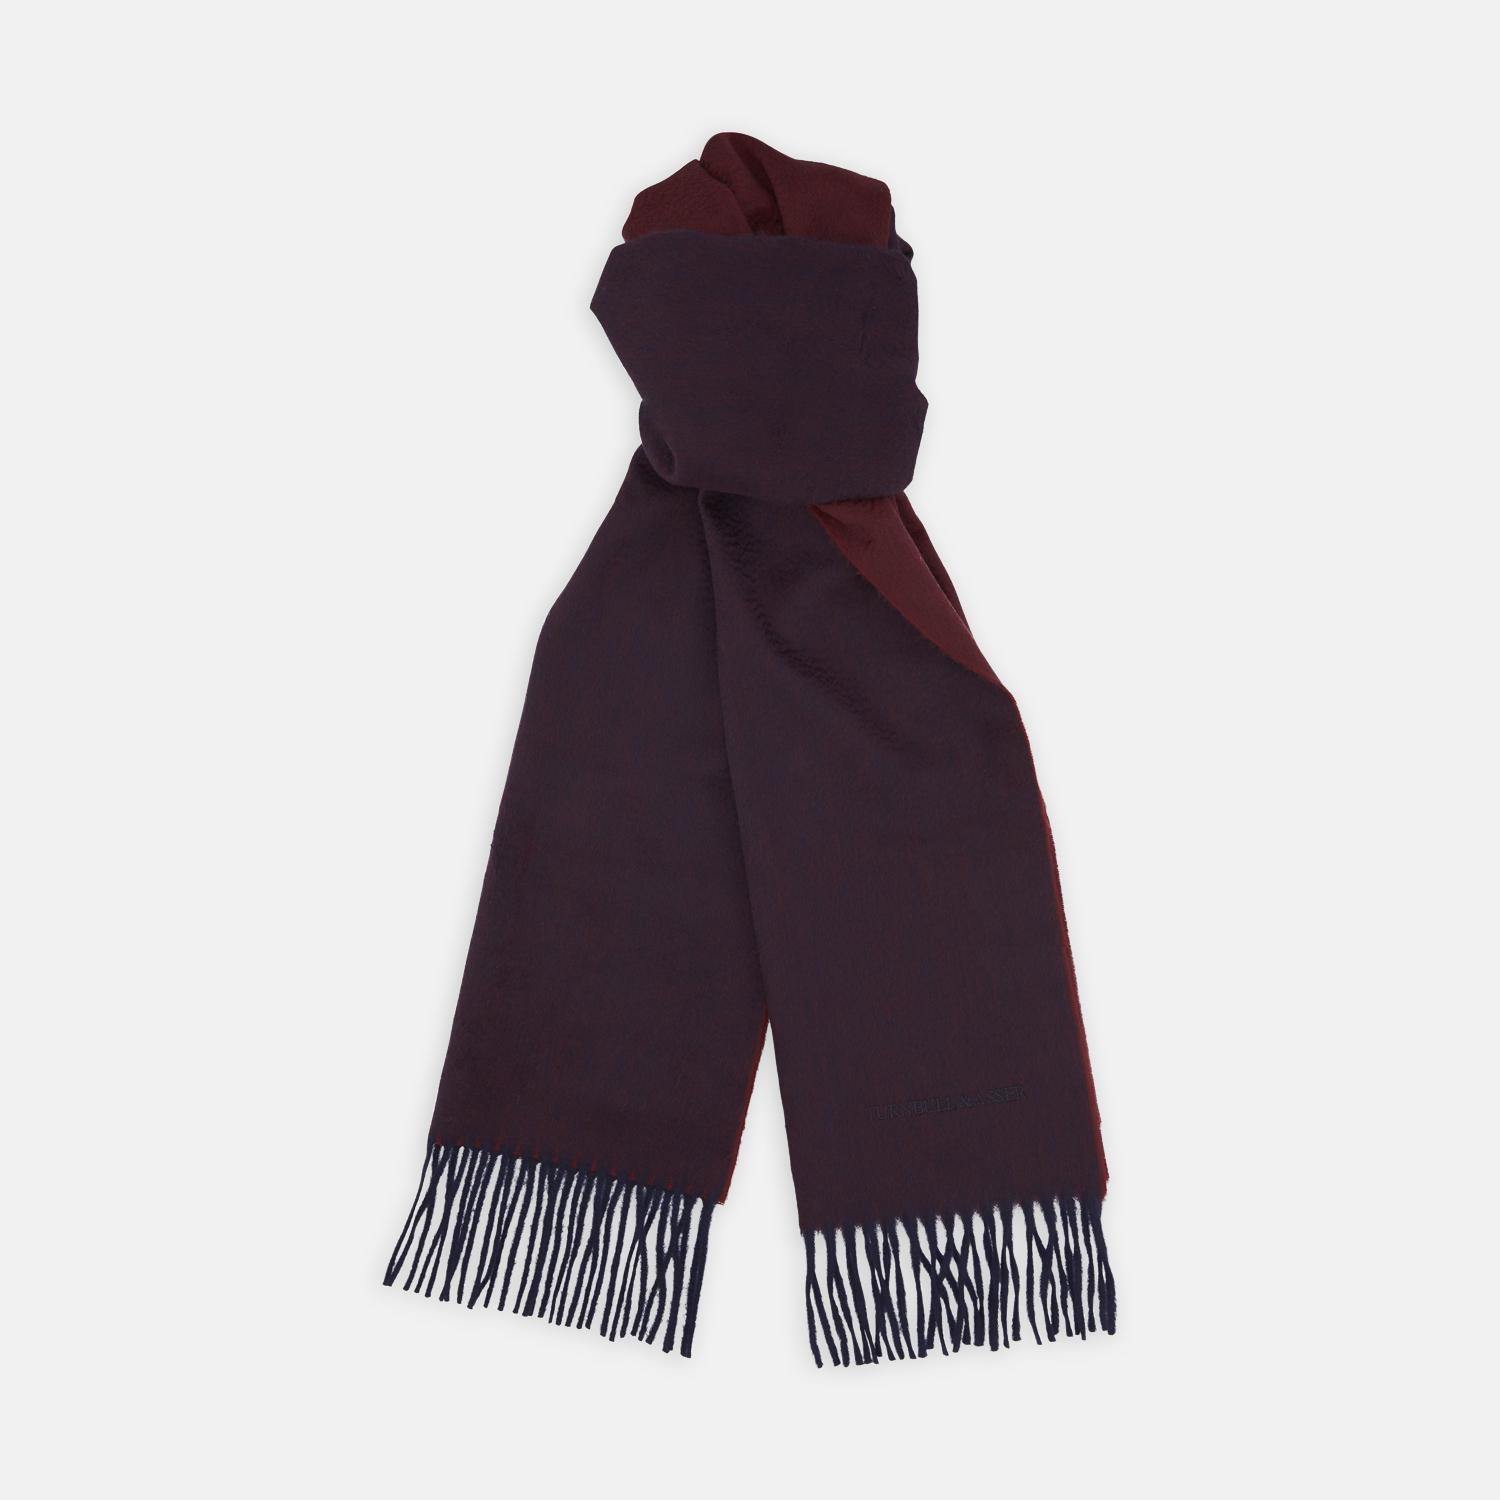 91bdd8028ee61 Turnbull & Asser Reversible Navy And Red Pure Cashmere Scarf in Blue ...